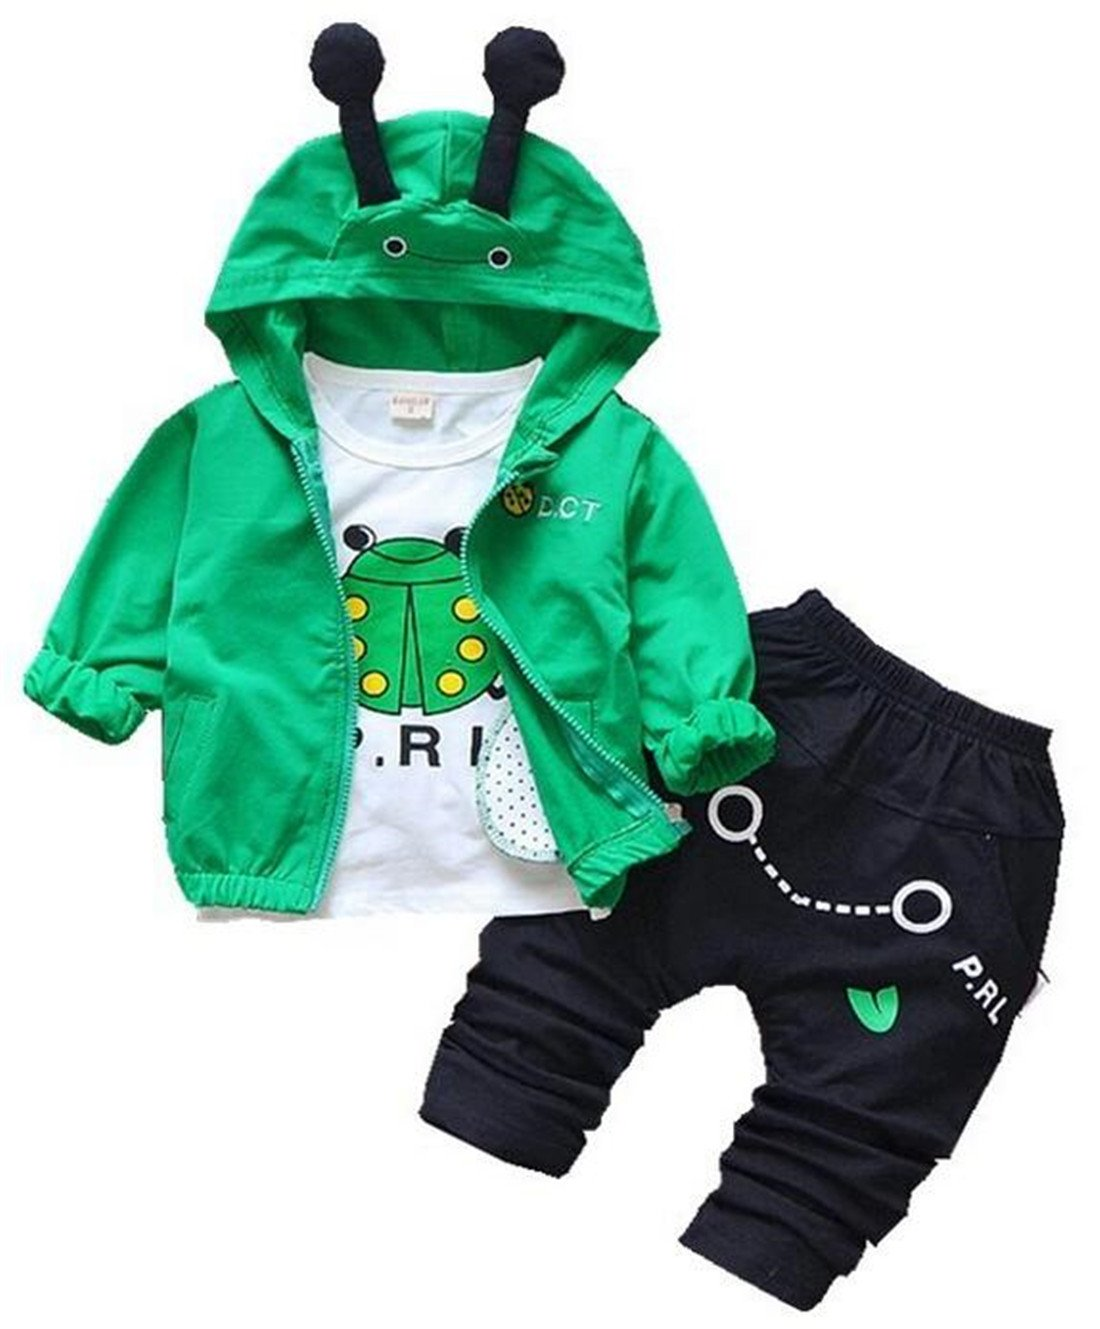 UNIQUEONE 3Pcs Toddler Boys Cute Cartoon Hooded Jacket+T-Shirt+Pant Tracksuit Outfit Size 6-12 Months/Tag80 (Green)